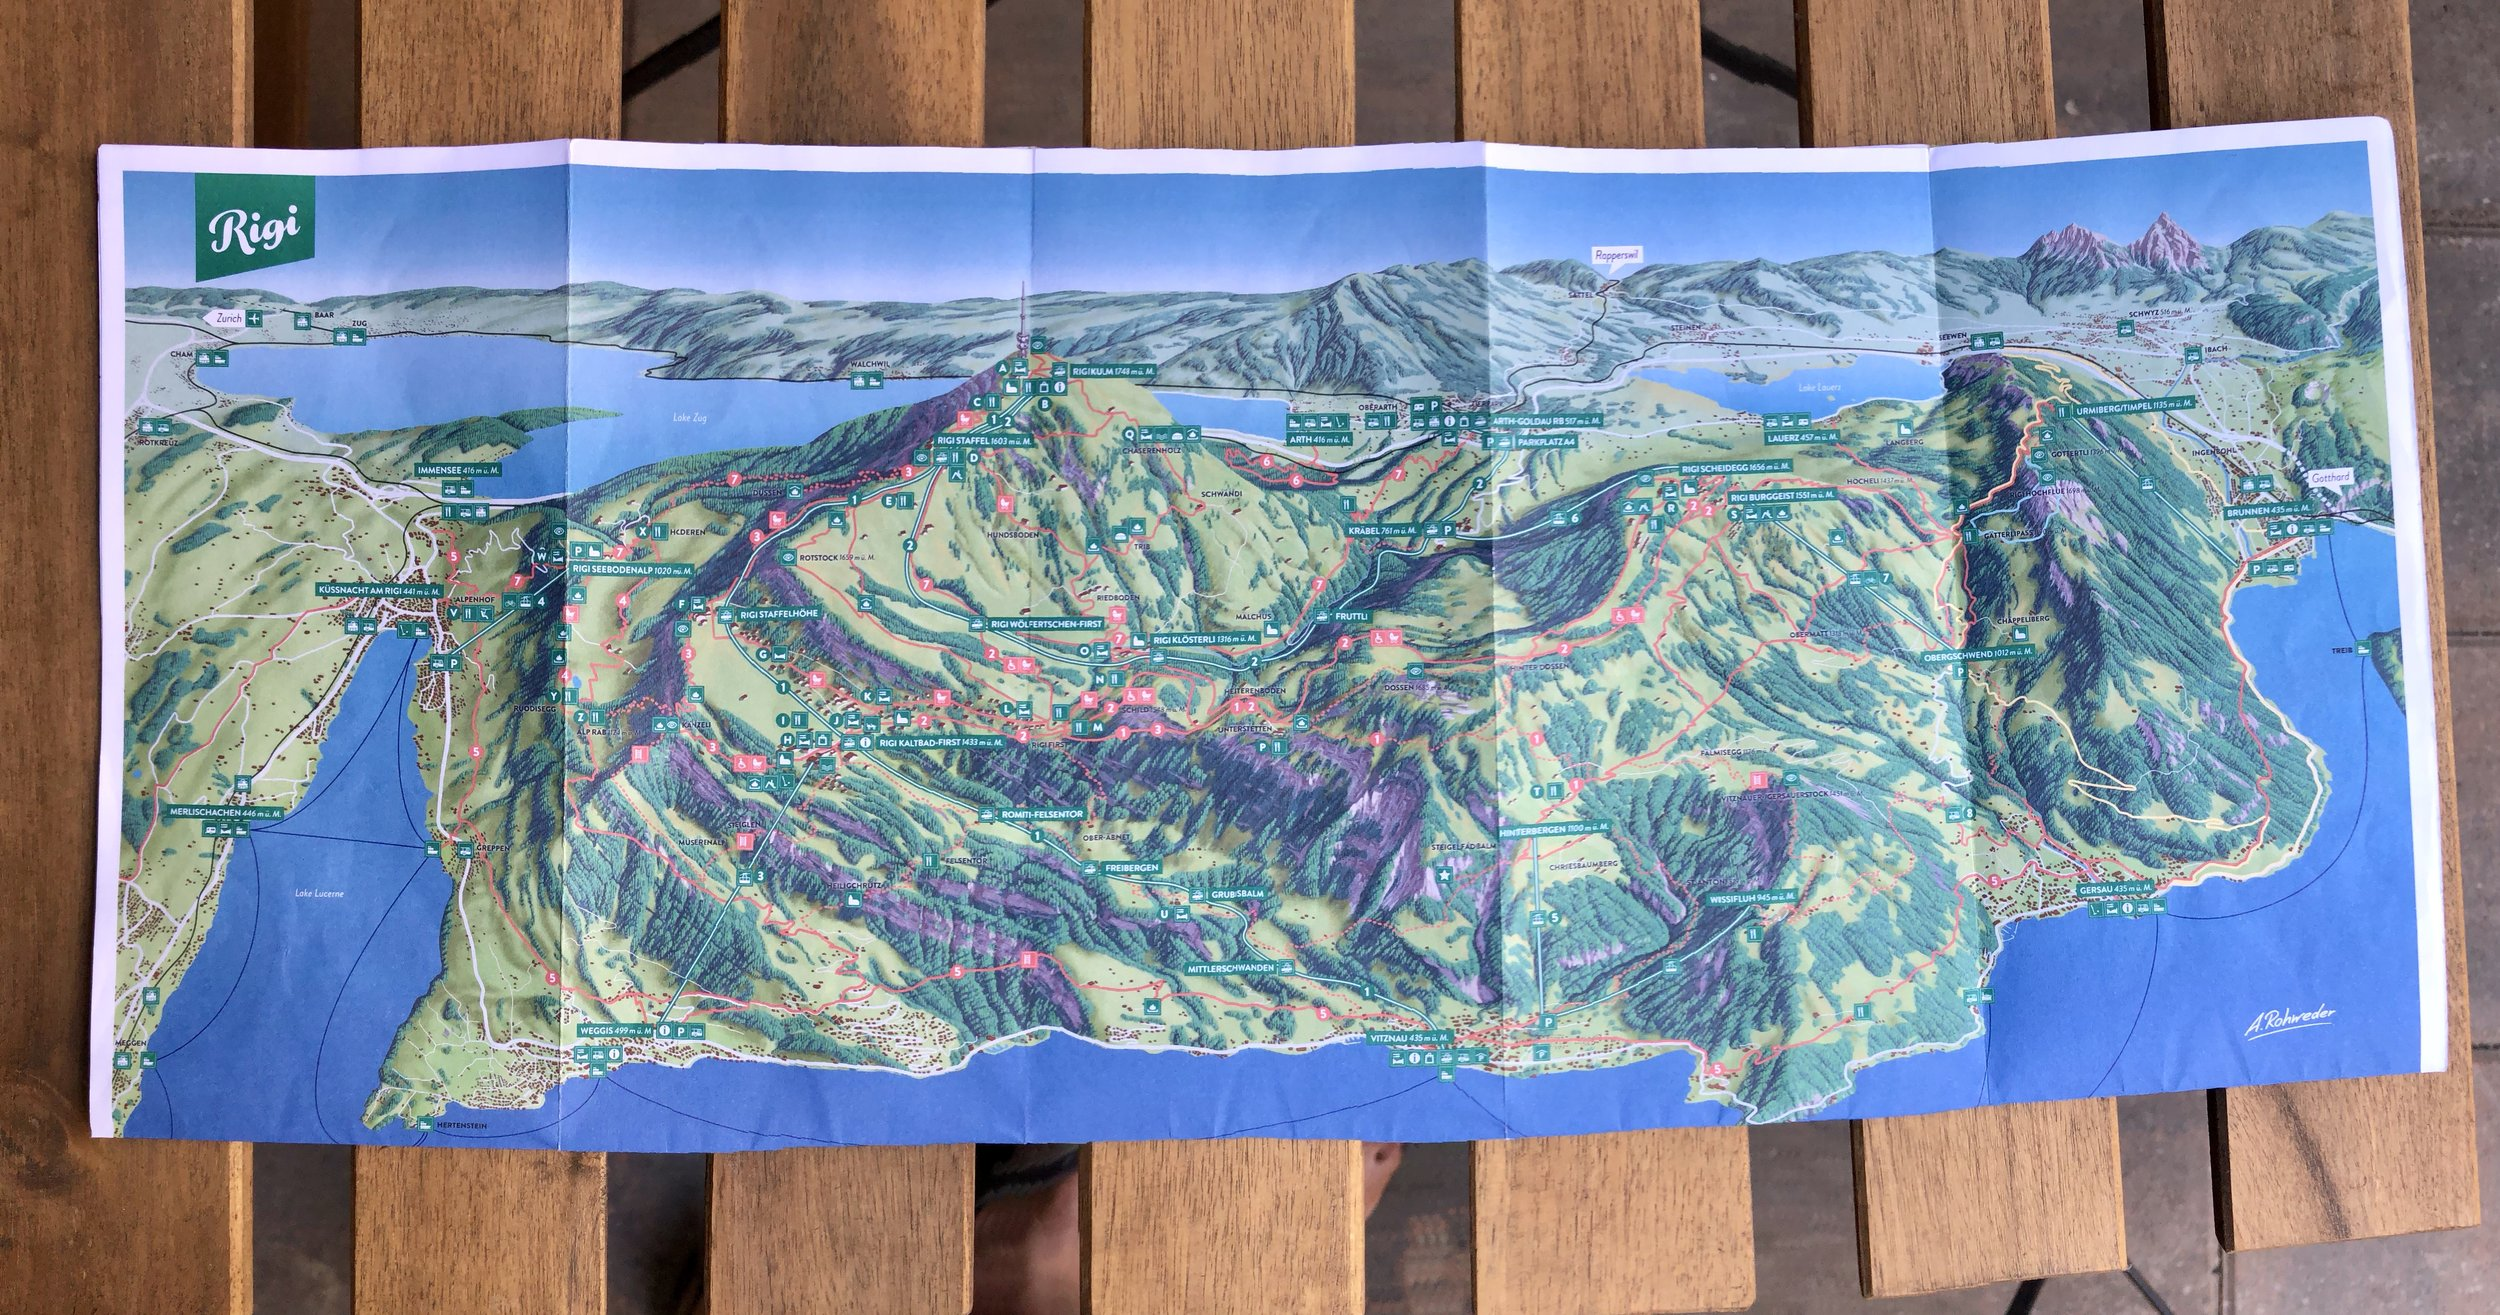 Map of Mt Rigi area and hiking trails